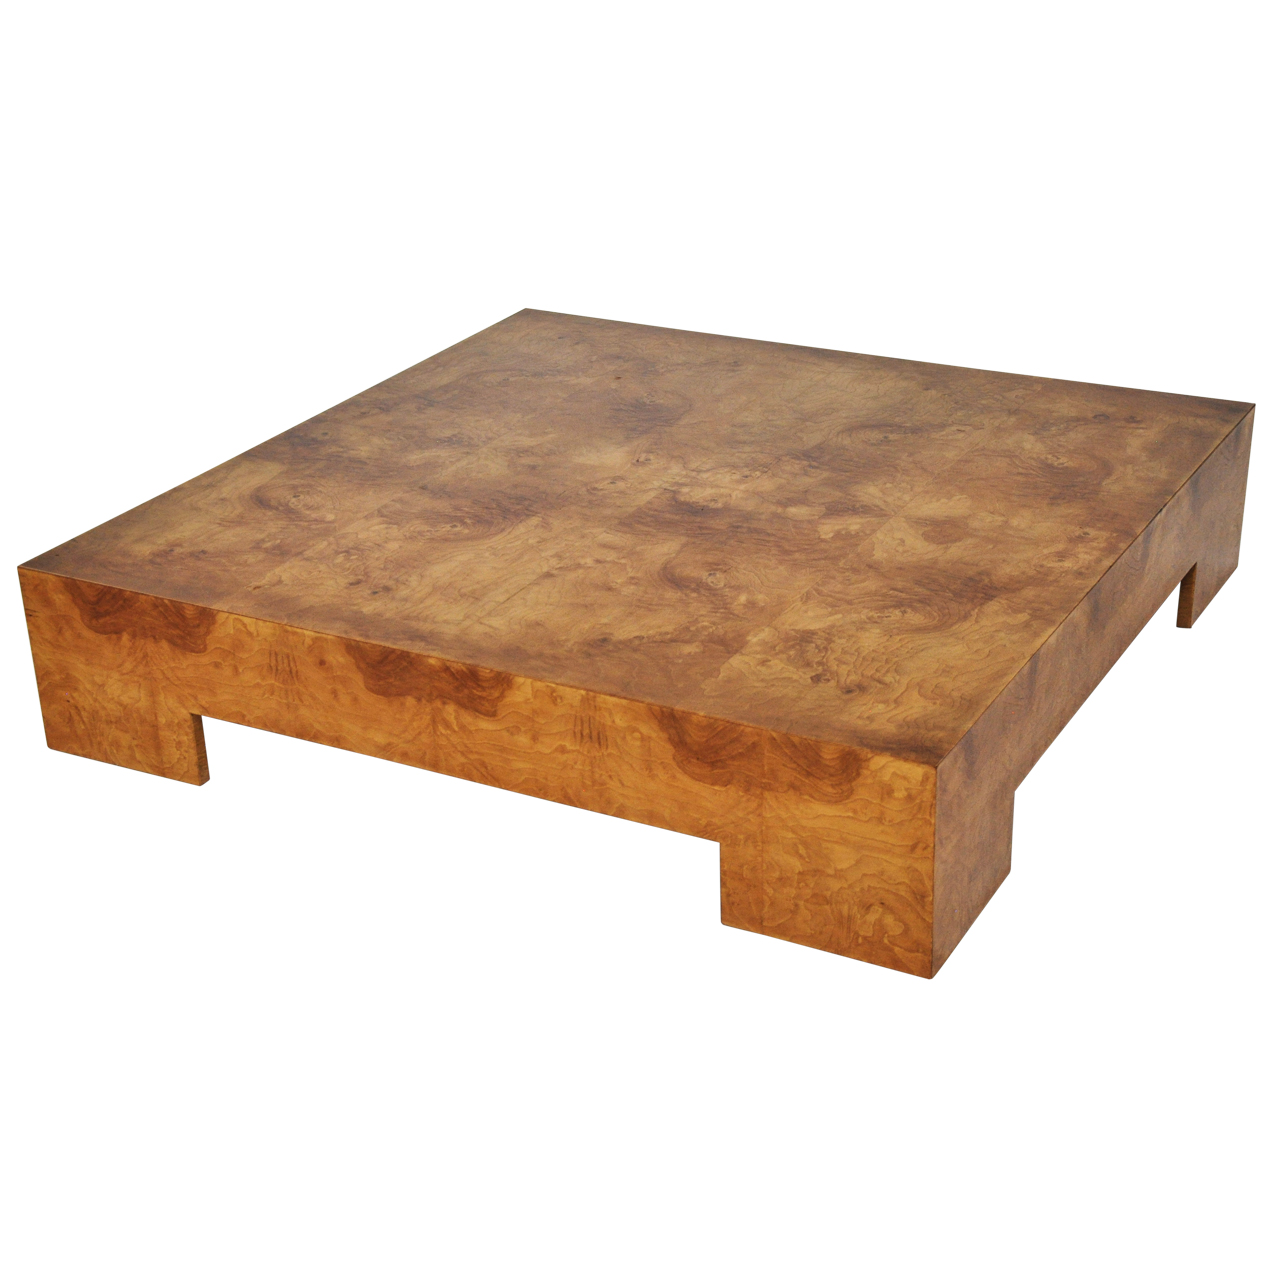 Milo baughman low burl wood coffee table